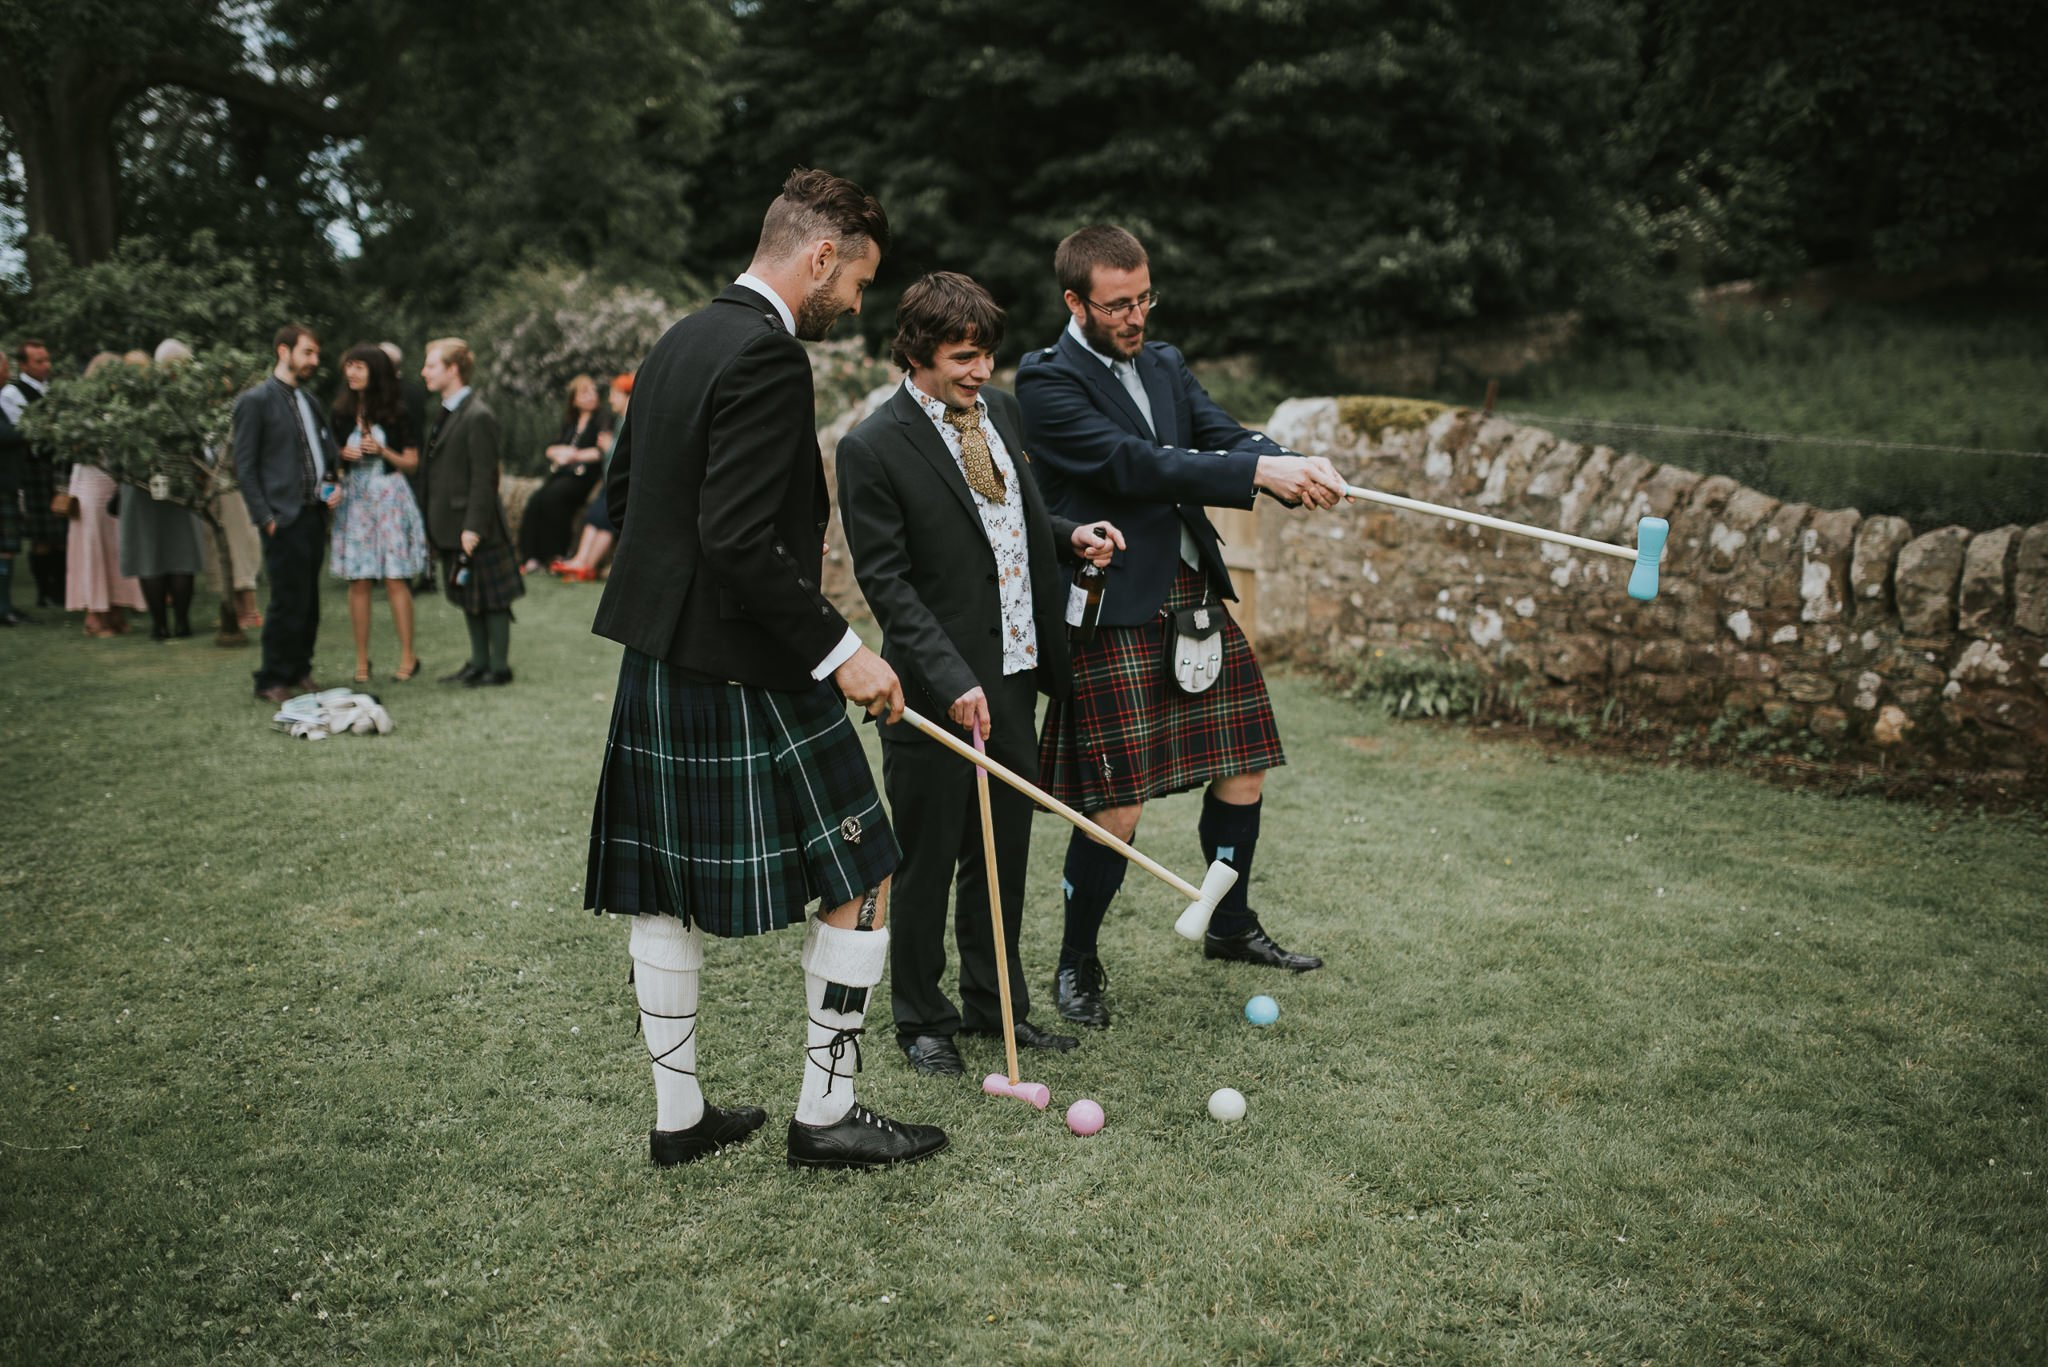 croquet at a wedding